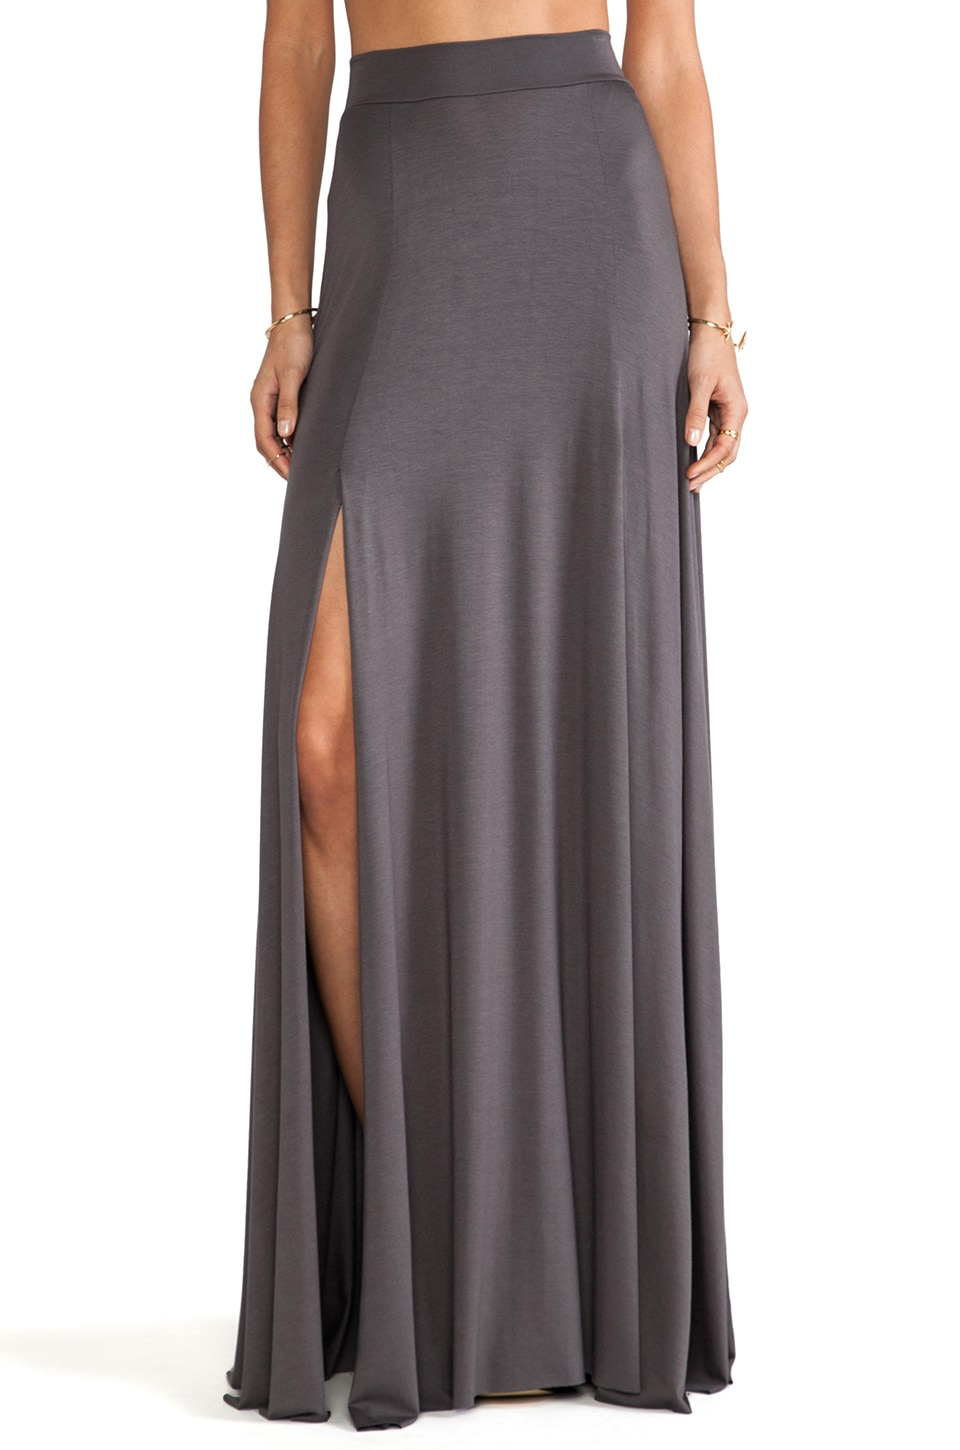 Rachel Pally Josephine Maxi Skirt in Pebble